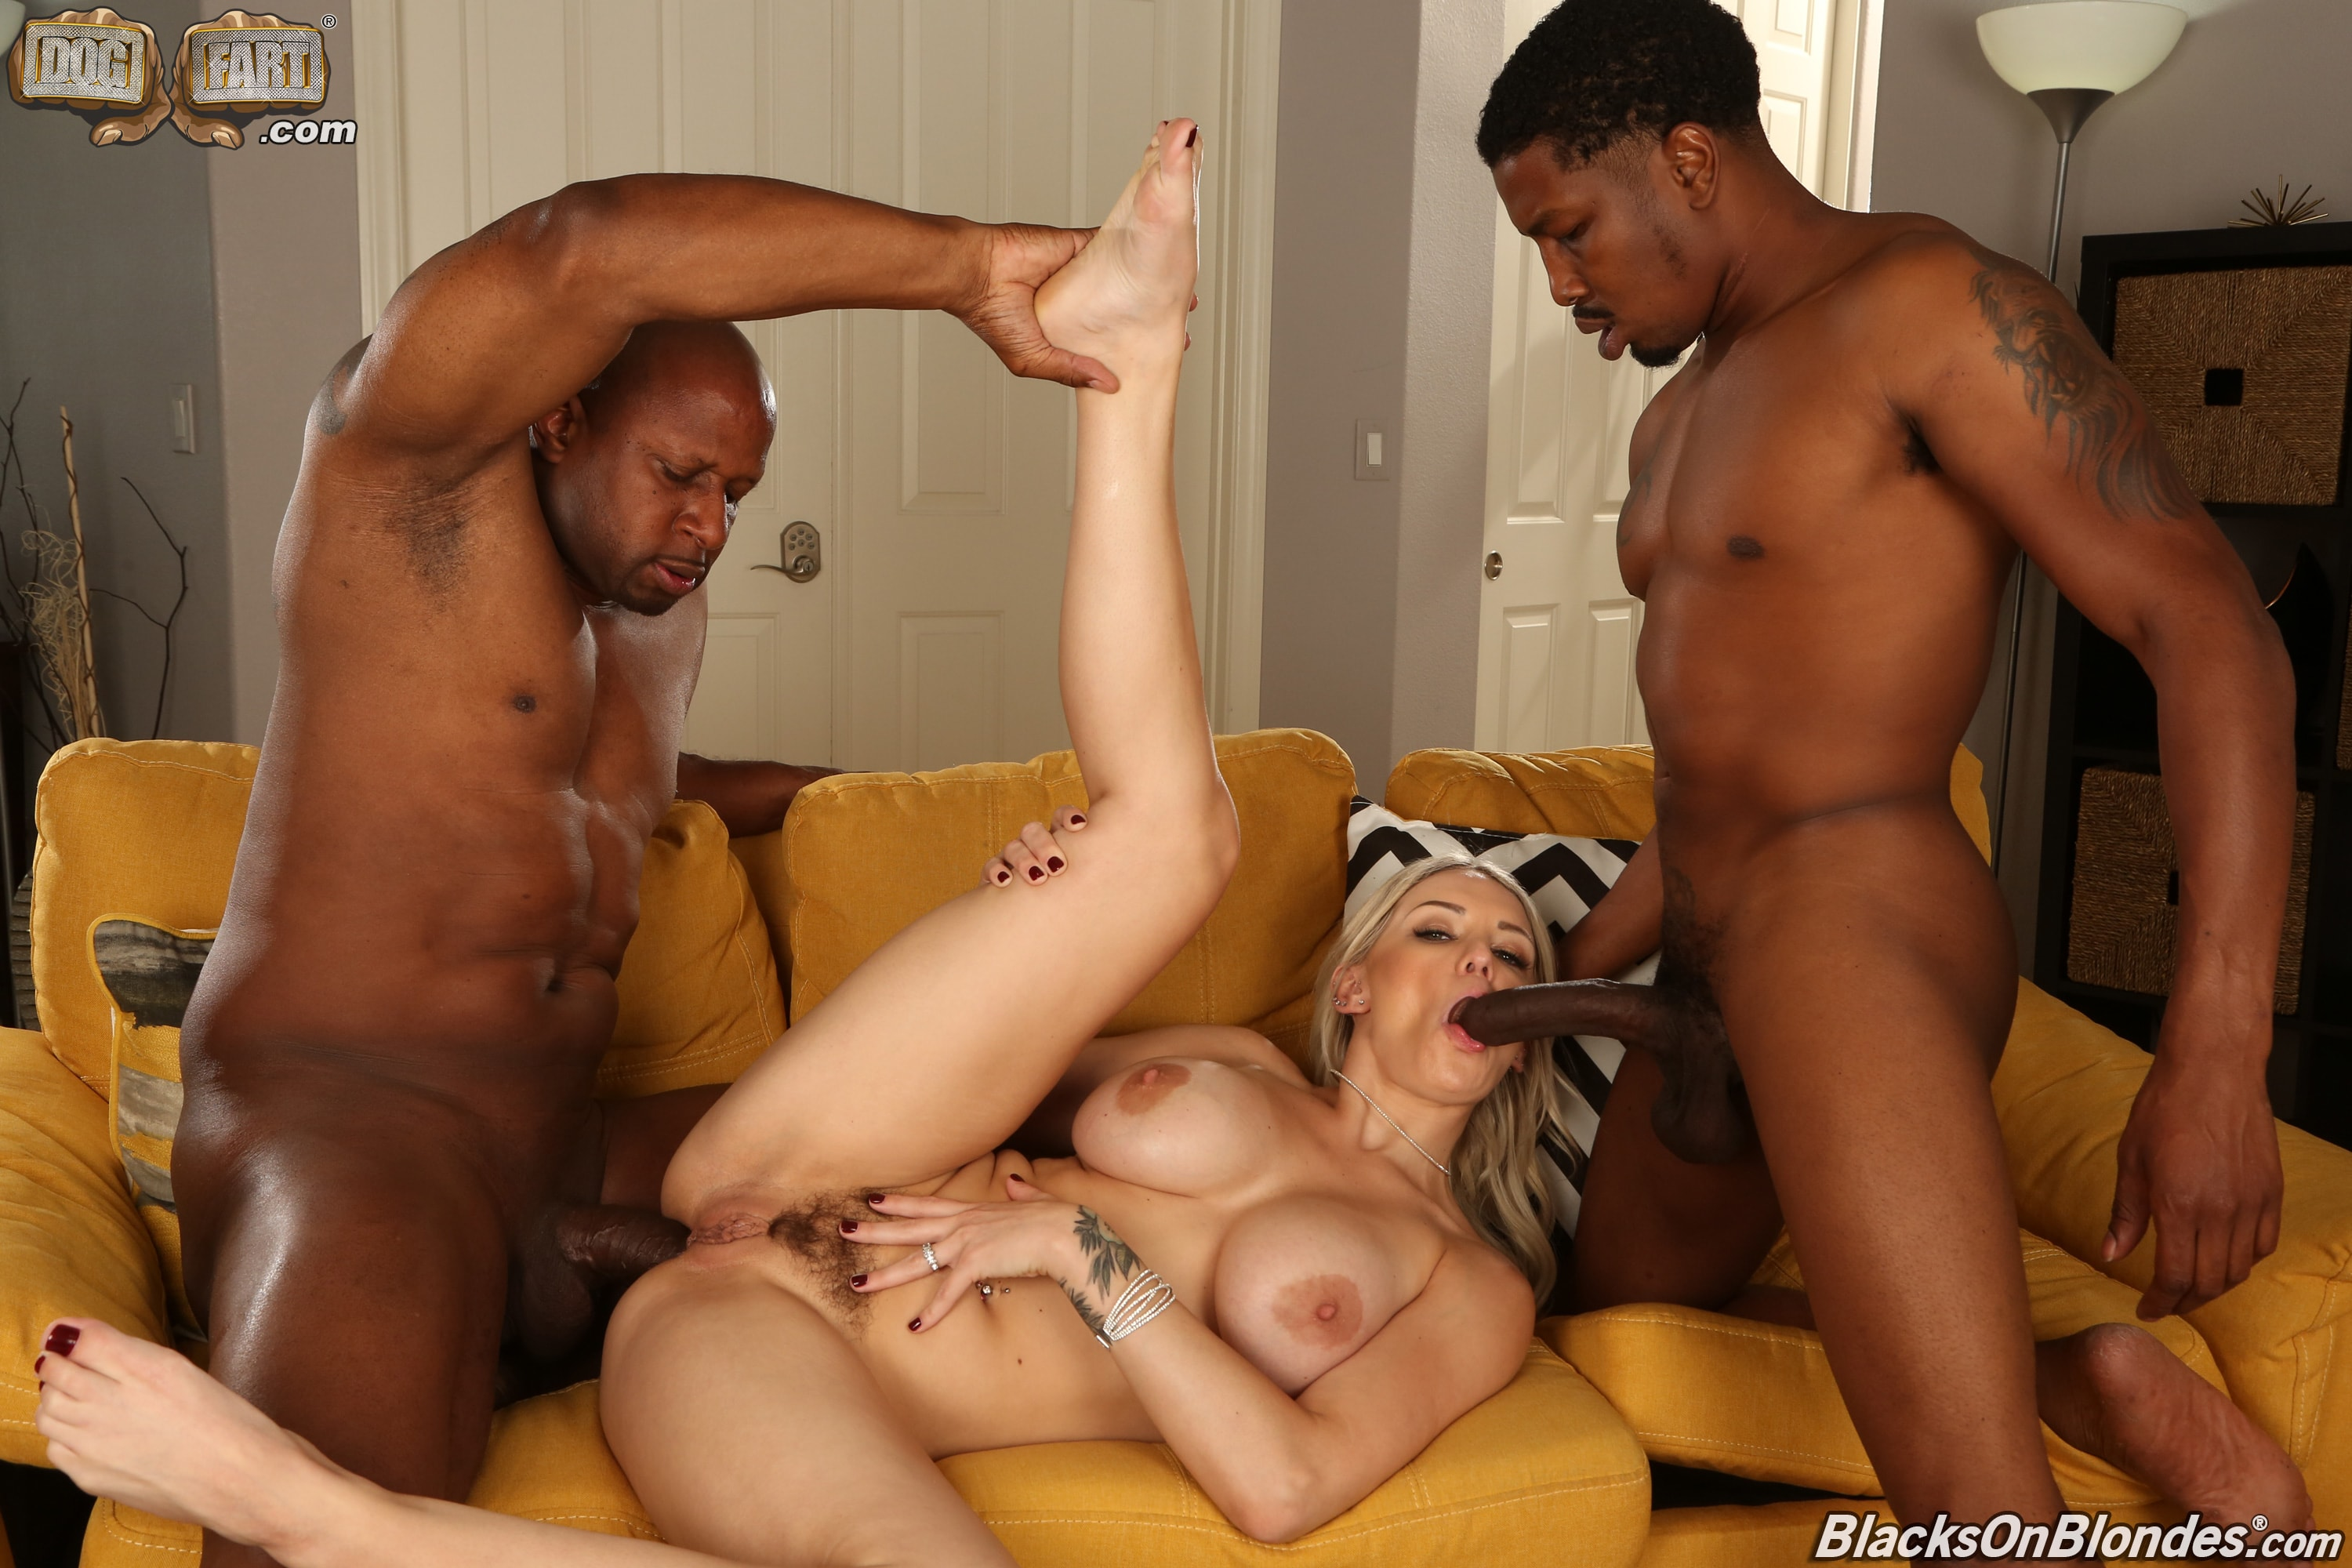 Dogfart '- Blacks On Blondes - Scene 2' starring Kenzie Taylor (Photo 15)